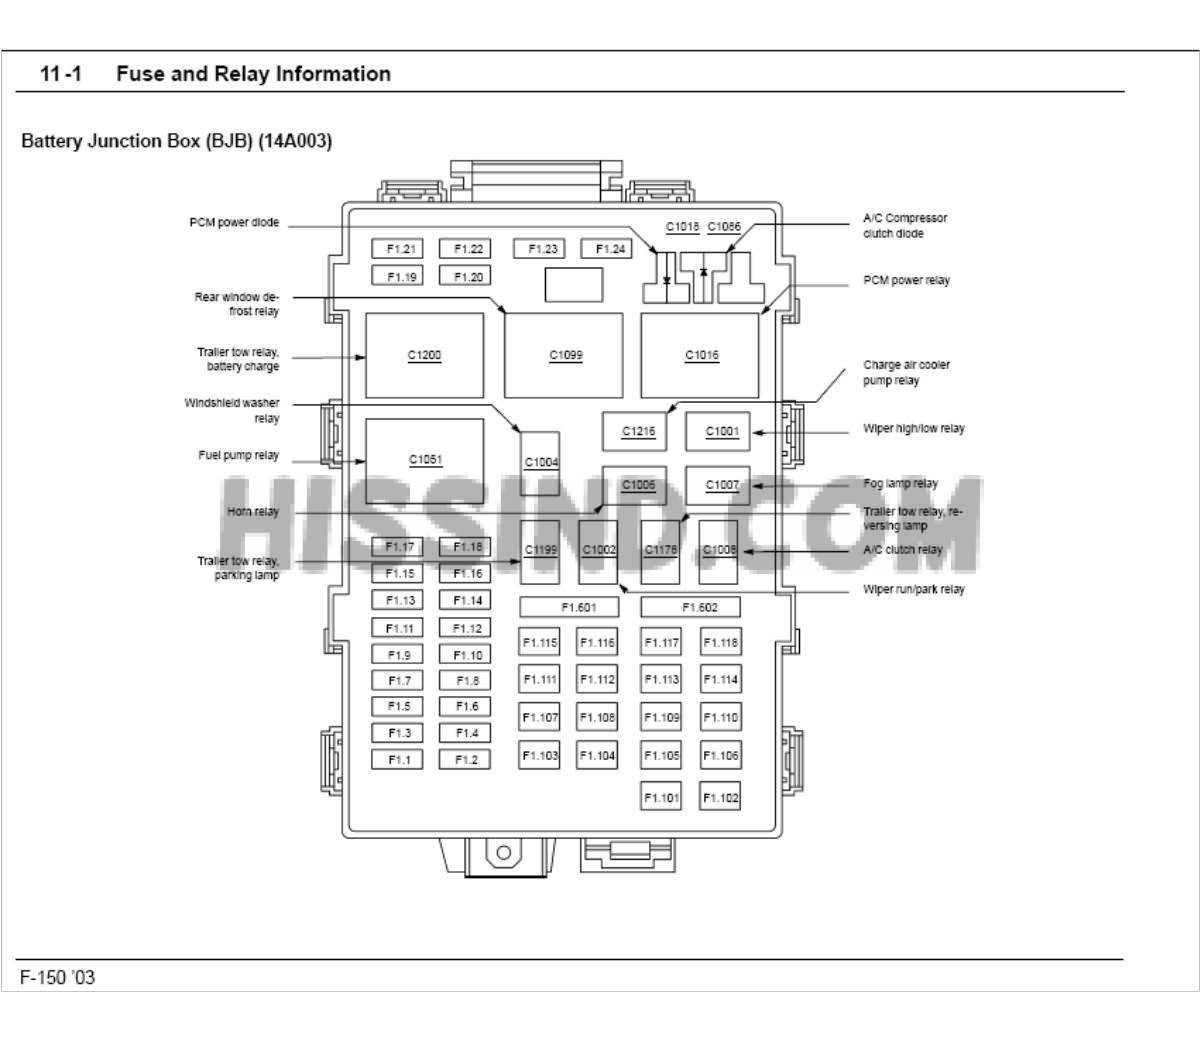 small resolution of 2000 ford f150 fuse box diagram engine bay